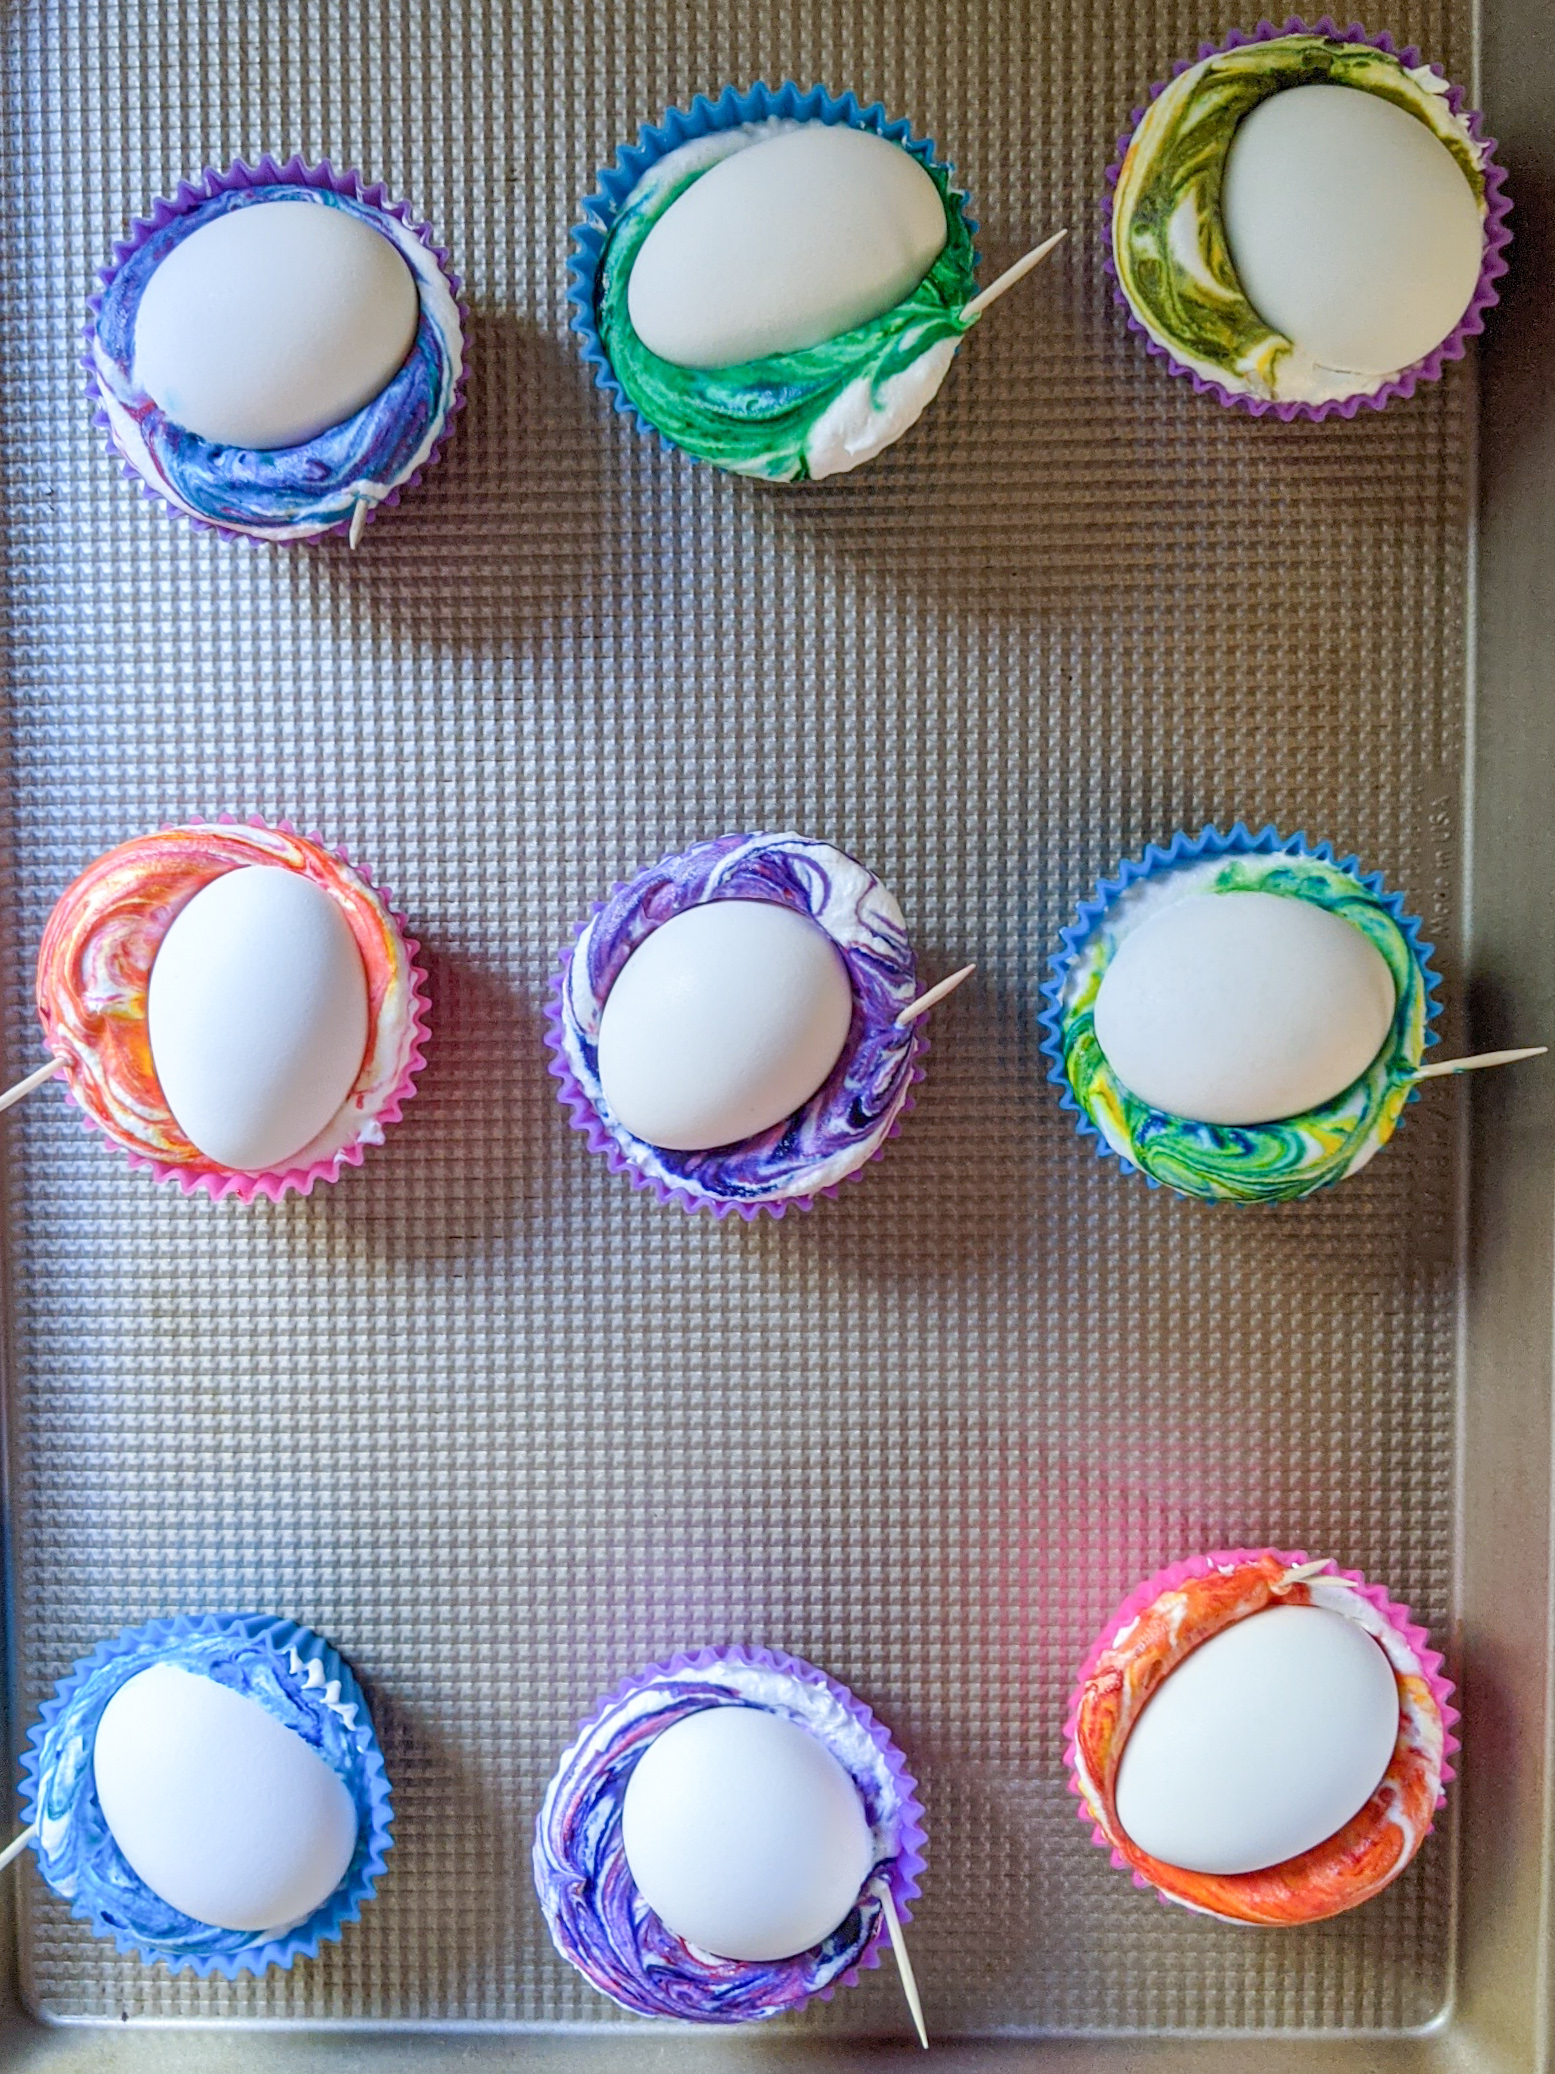 Tie-dyeing egg step 1